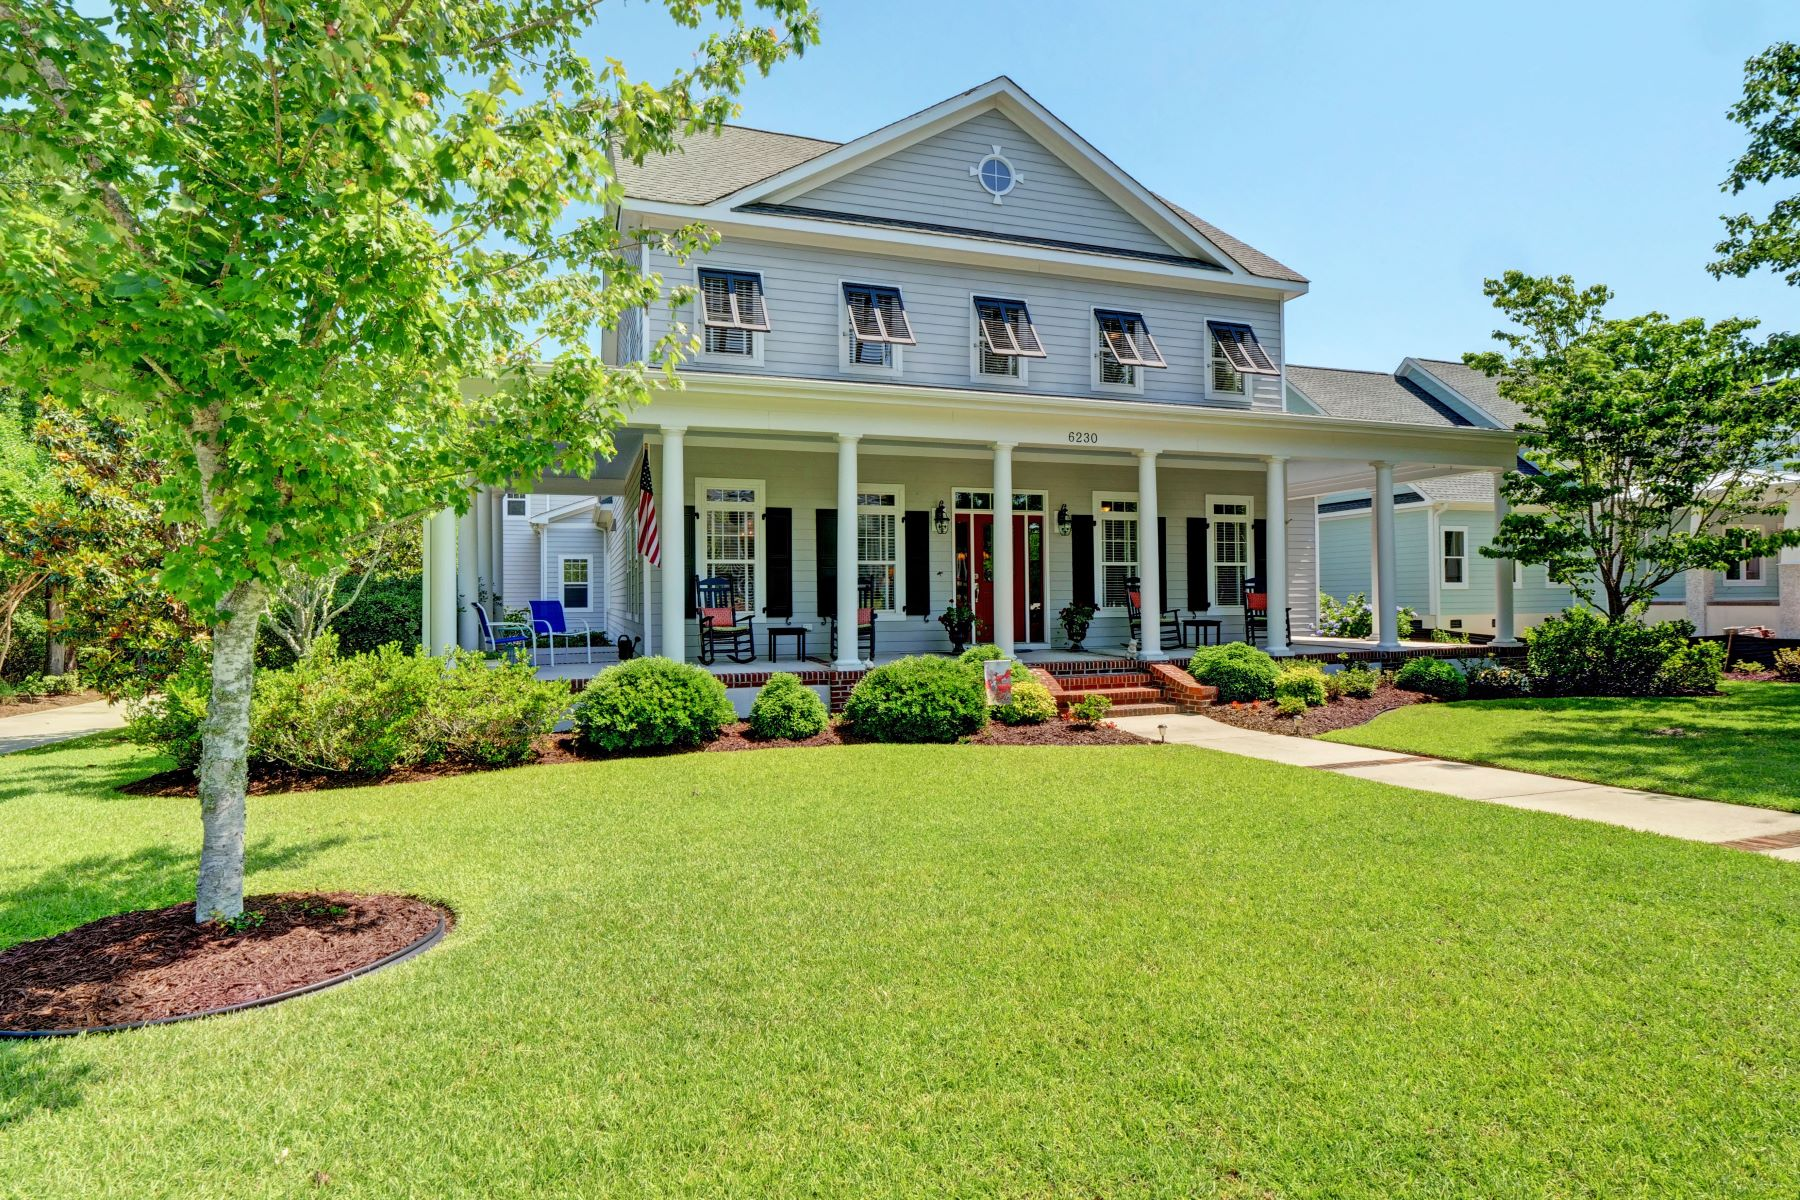 Single Family Home for Active at Gorgeous Low Country Home 6230 Pebble Shore Lane Southport, North Carolina 28461 United States